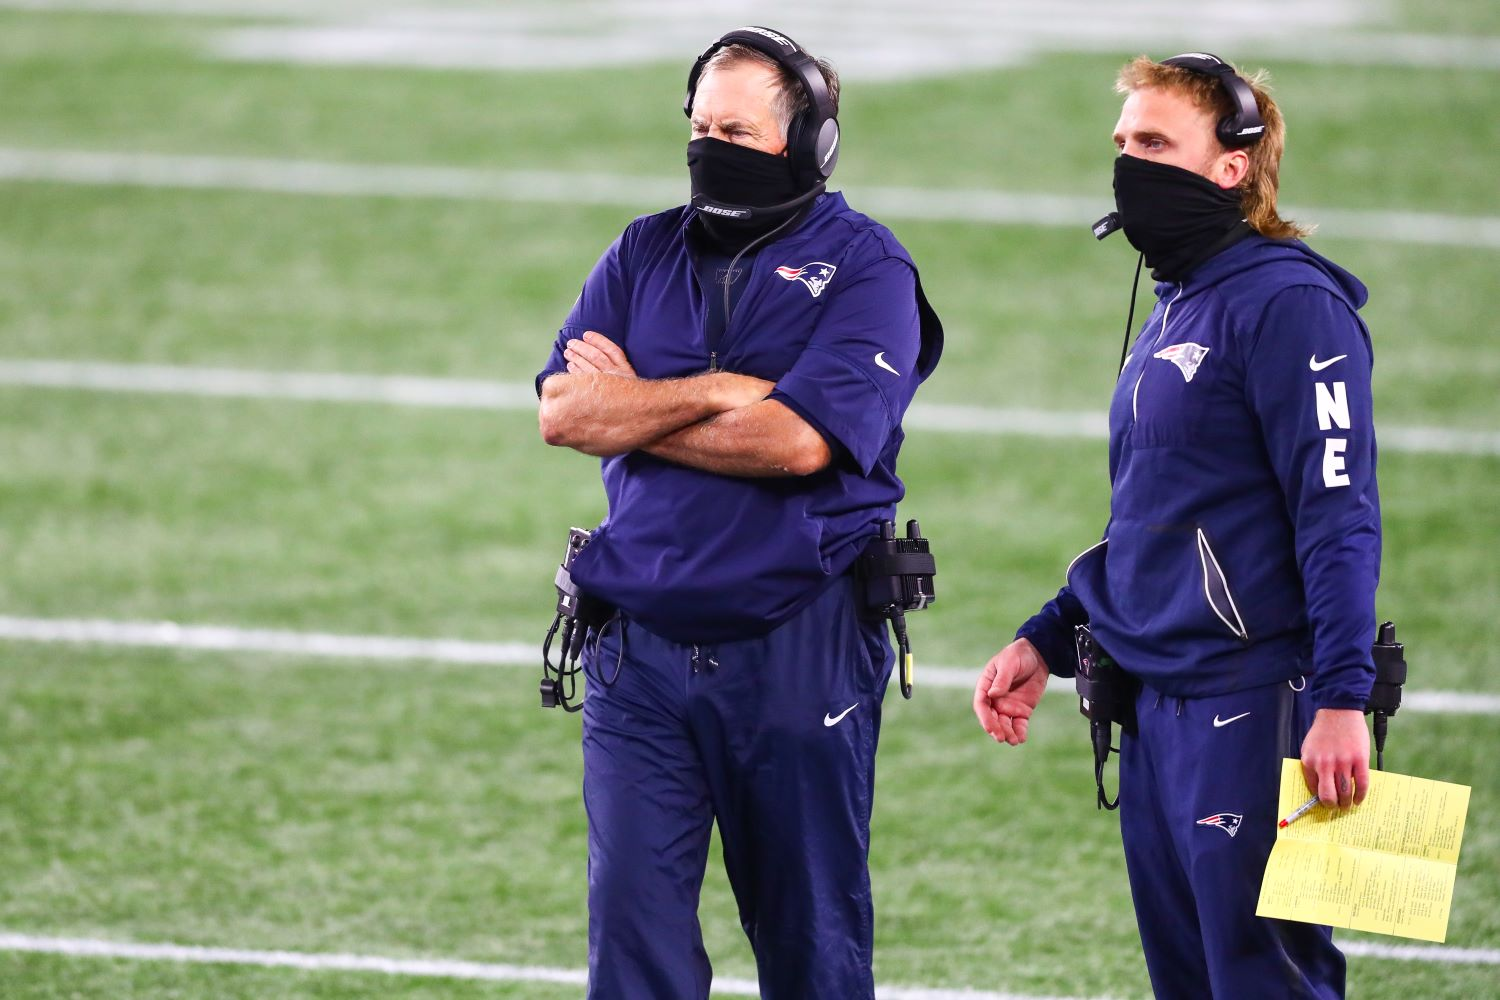 Bill Belichick finally admitted what Patriots fans have suspected all along: His son calls plays on defense.